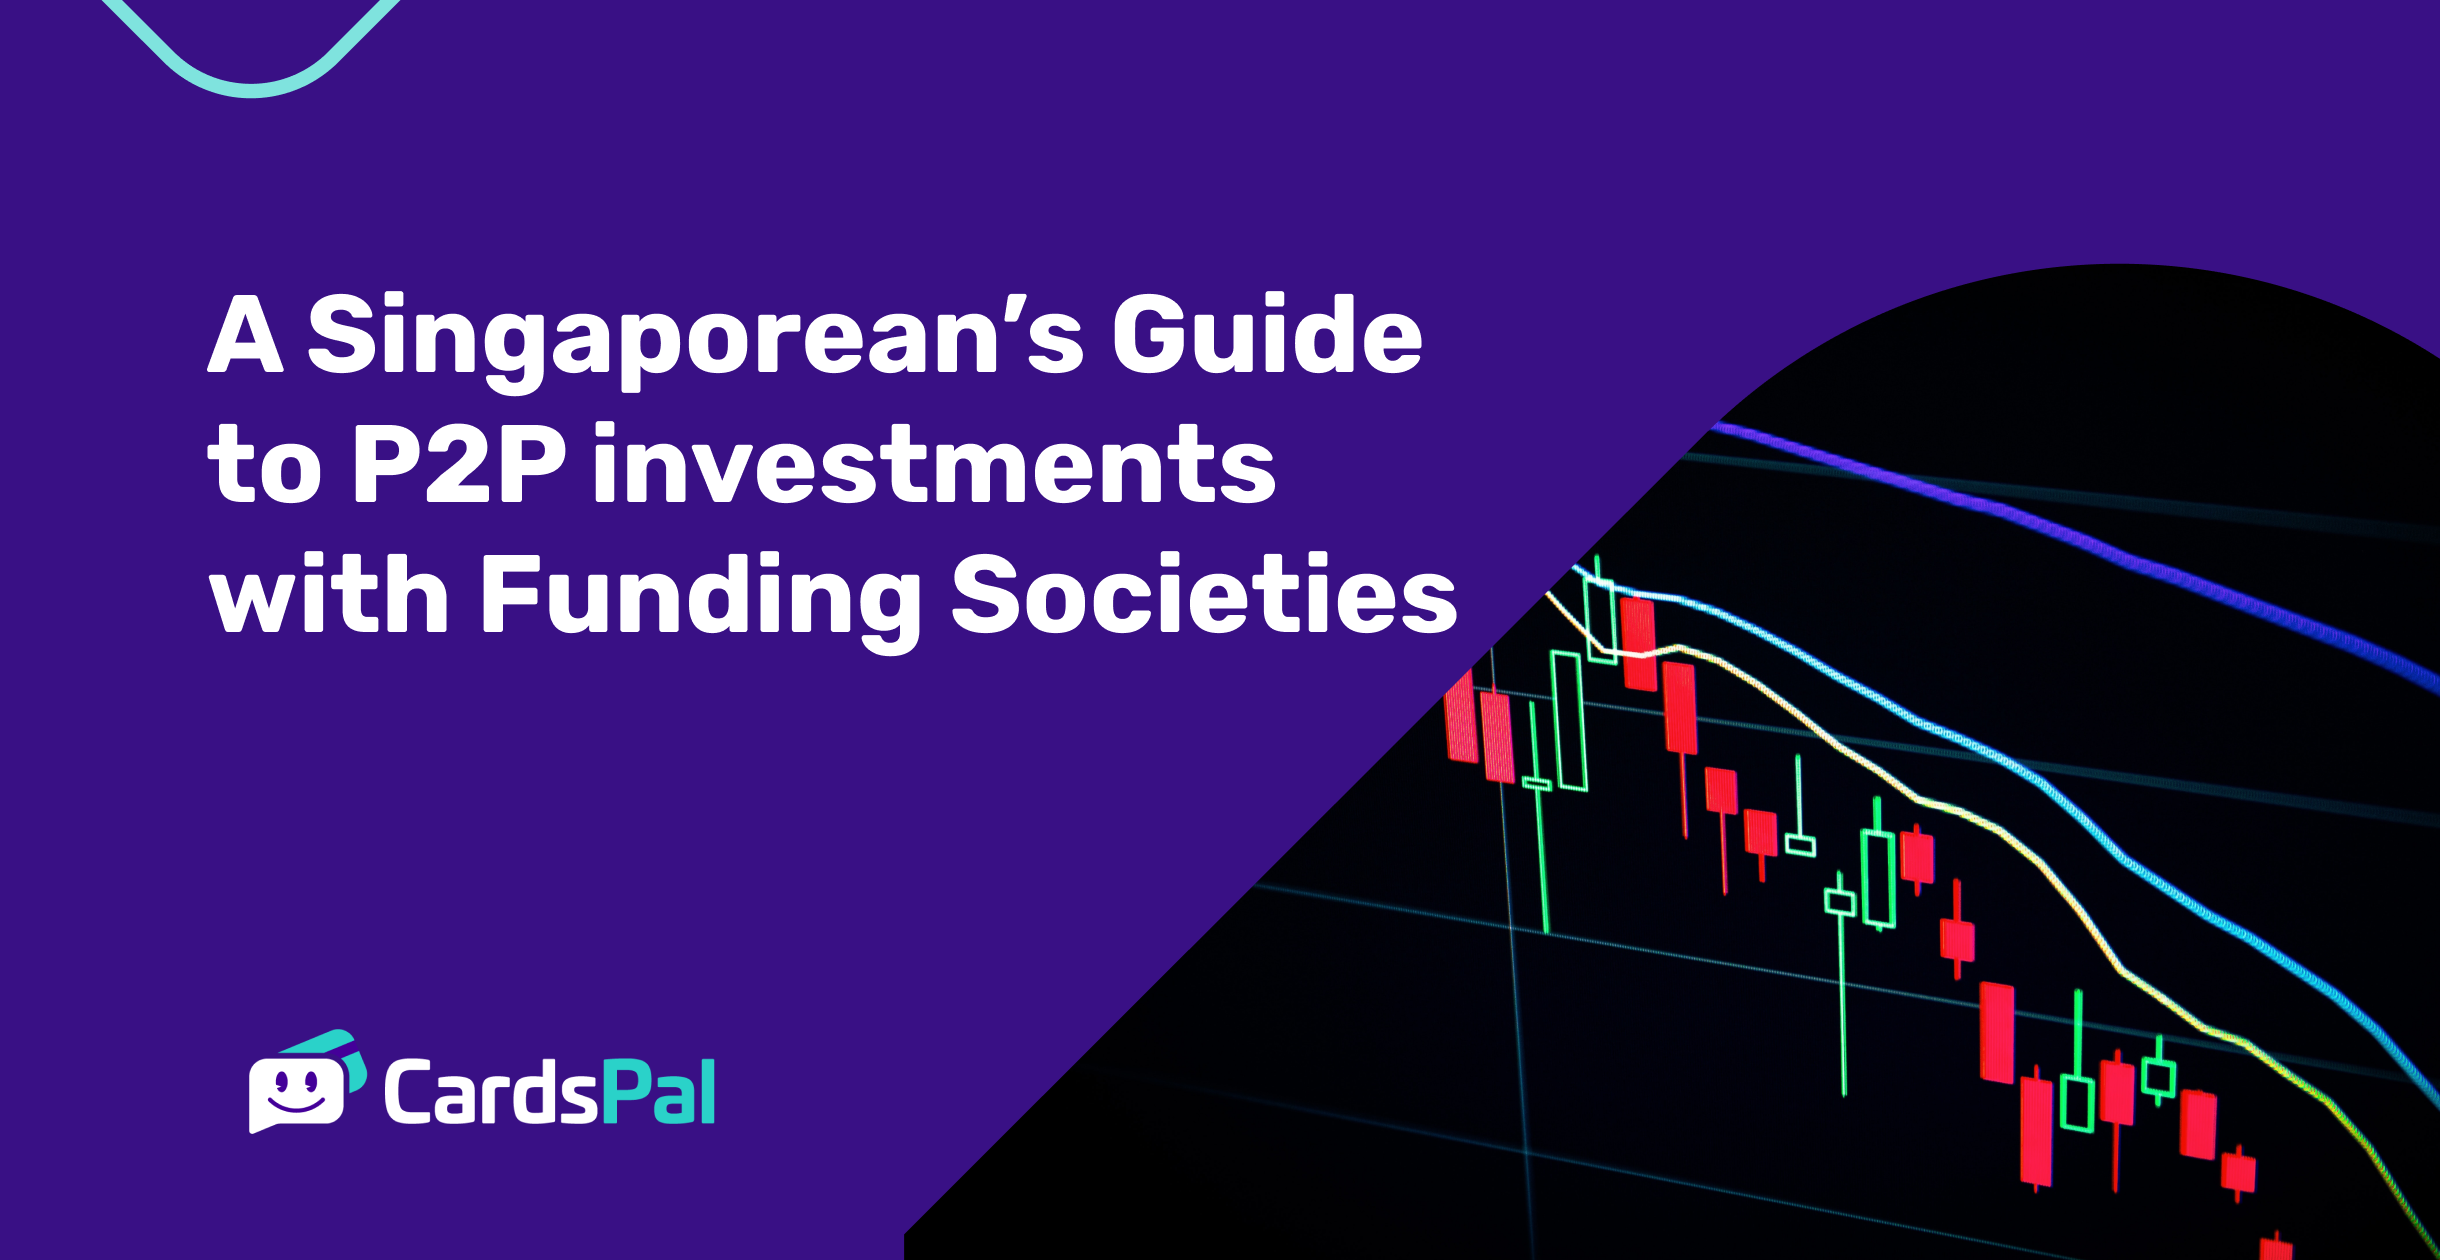 A Singaporean's Guide to P2P investments with Funding Societies